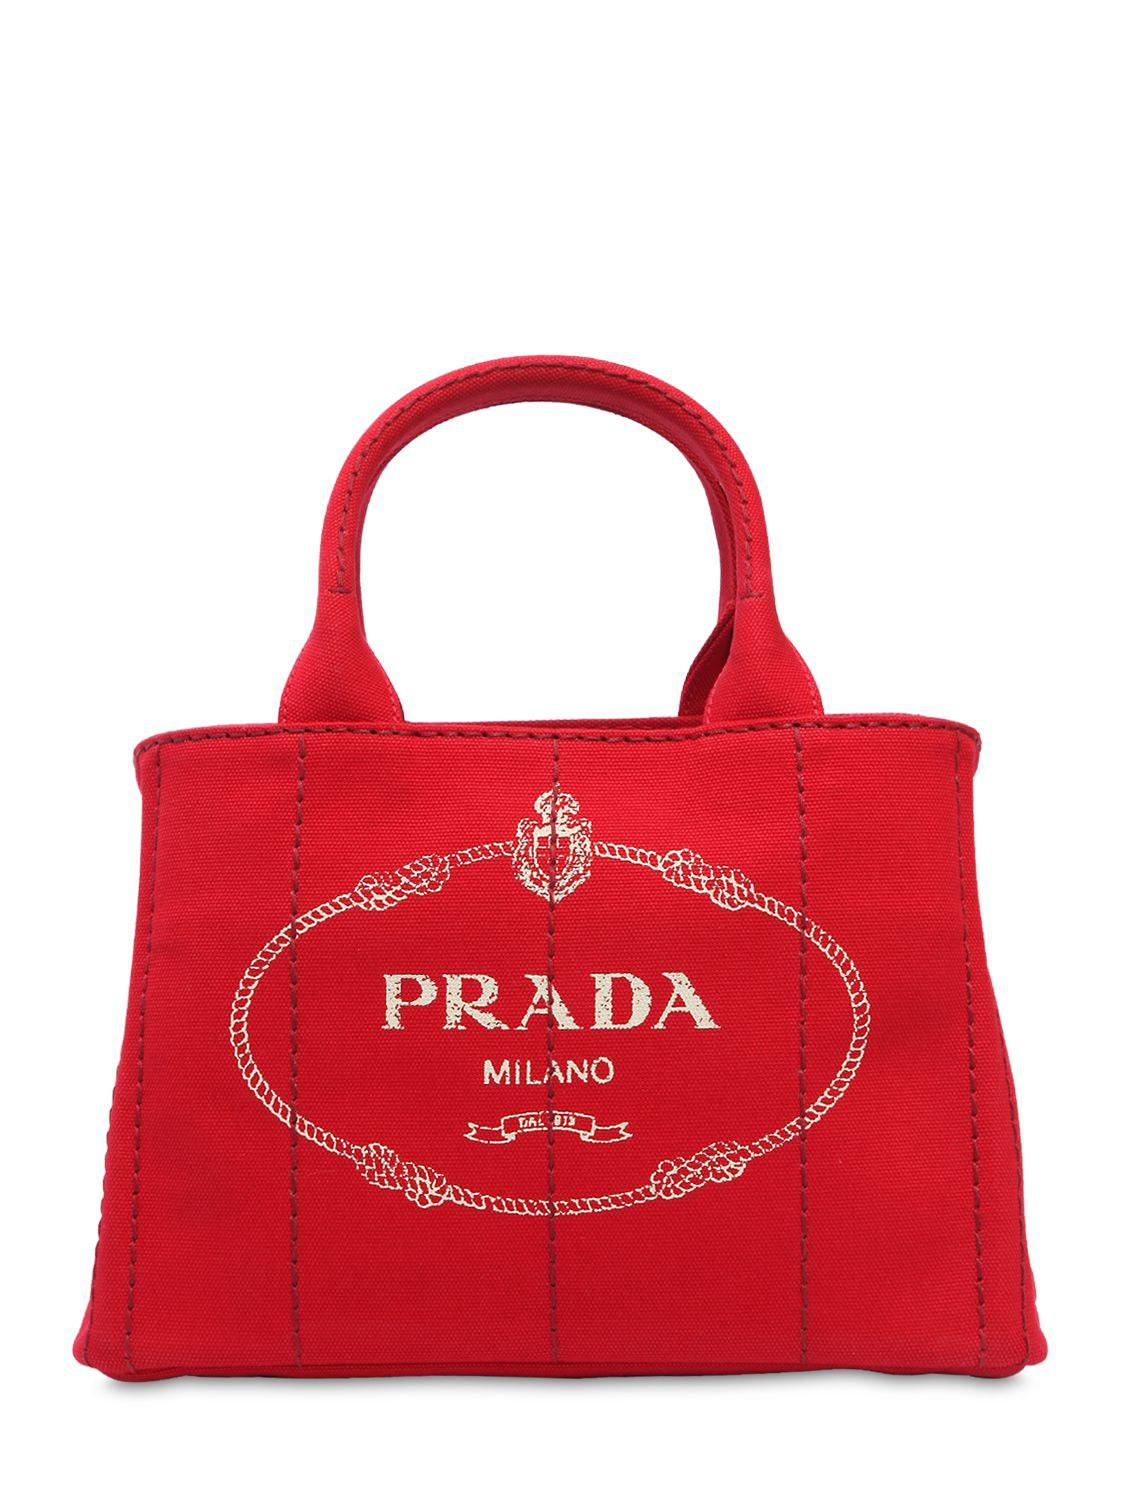 05ce12aeb629 Lyst - Prada Logo Printed Canvas Tote Bag in Red - Save 40%